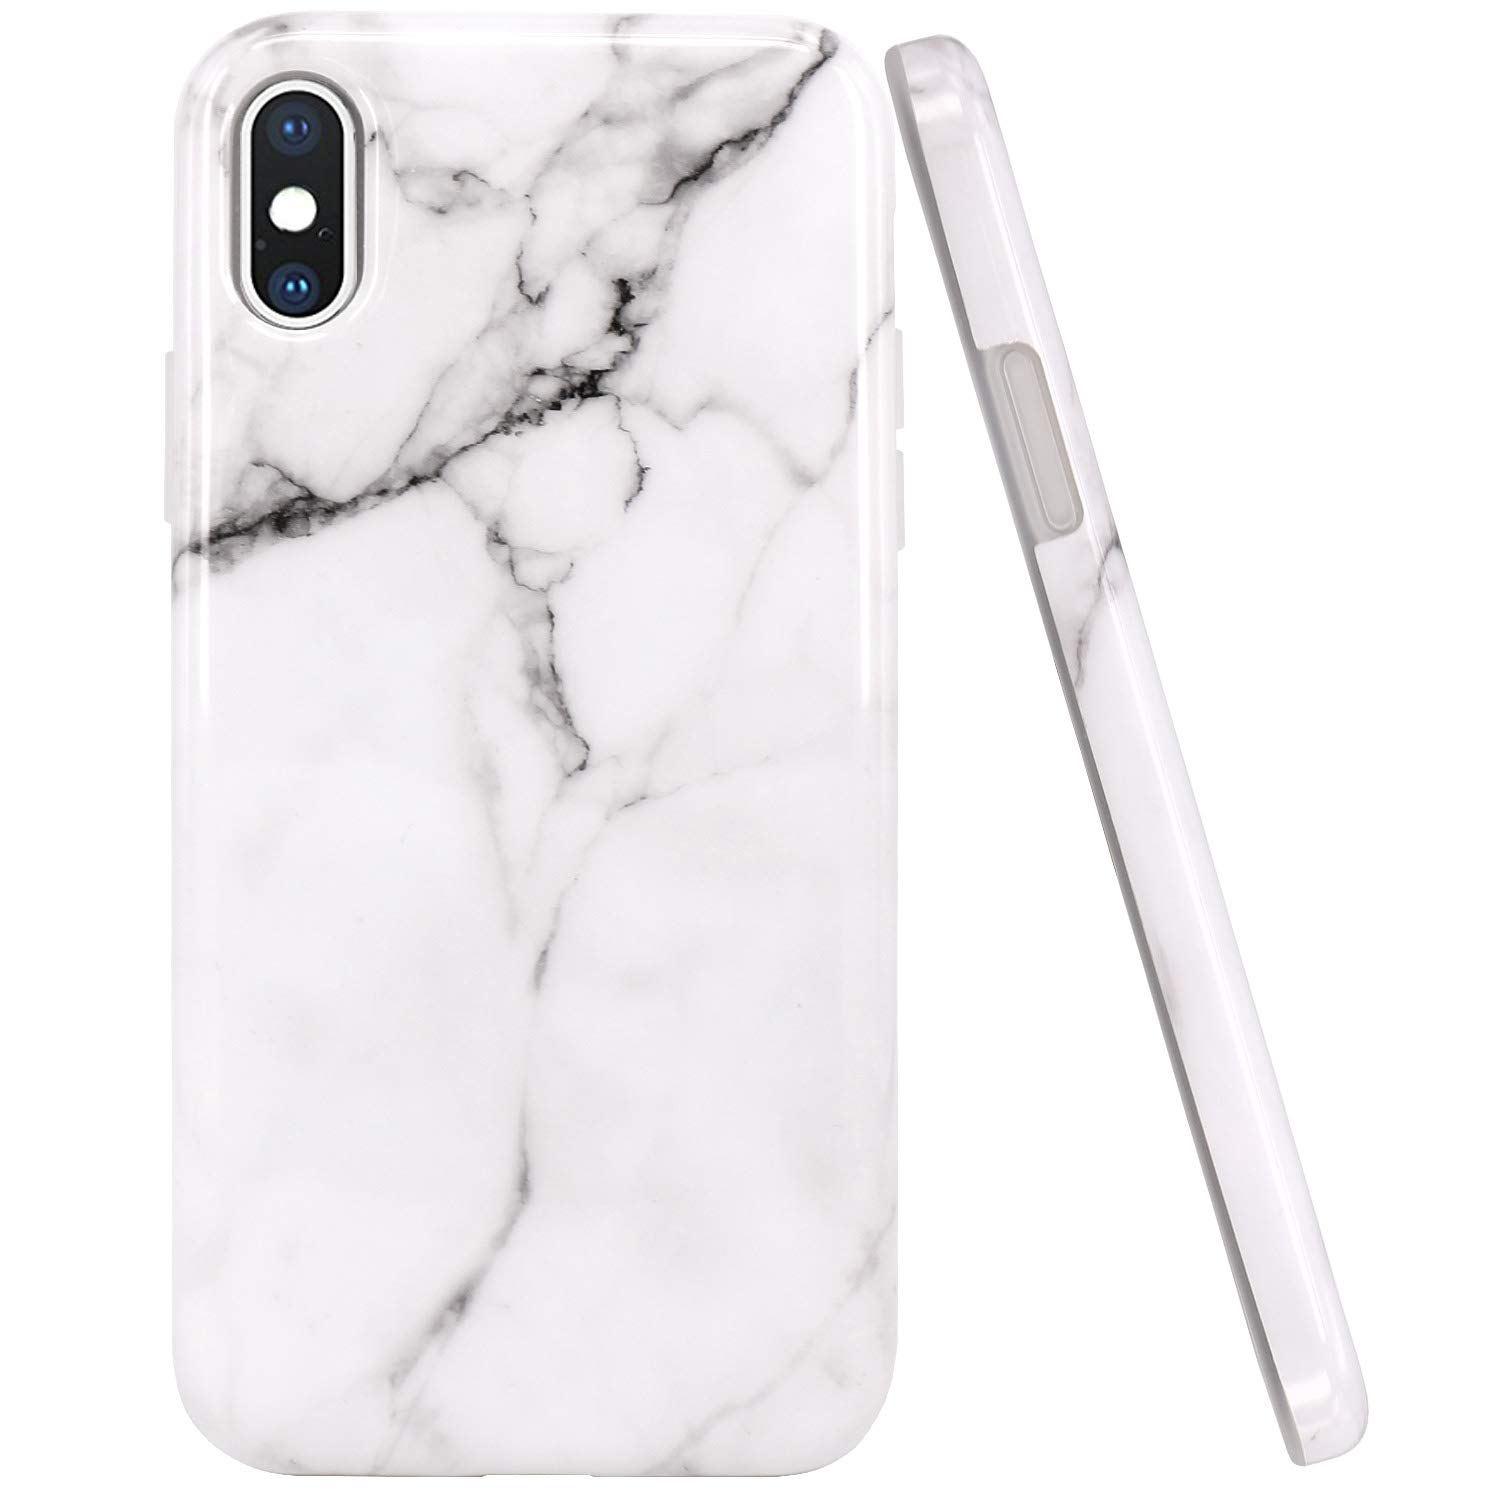 newest 0289b 6645a JAHOLAN iPhone X Case iPhone Xs Case White Marble Design Clear Bumper  Glossy TPU Soft Rubber Silicone Cover Phone Case for iPhone X iPhone Xs